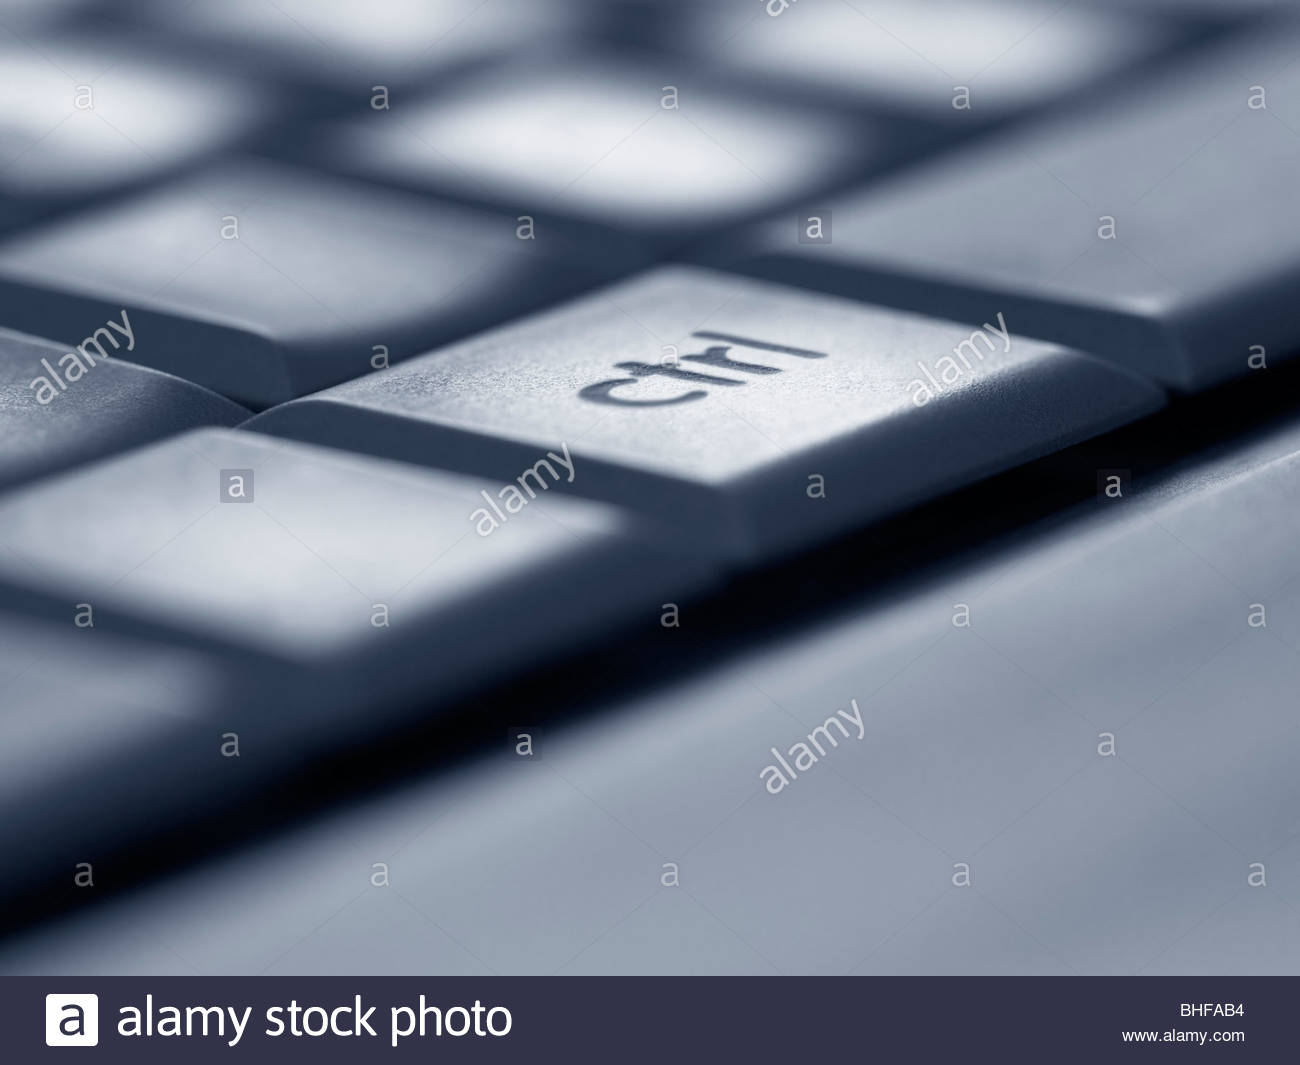 Close up of control key on computer keyboard - Stock Image